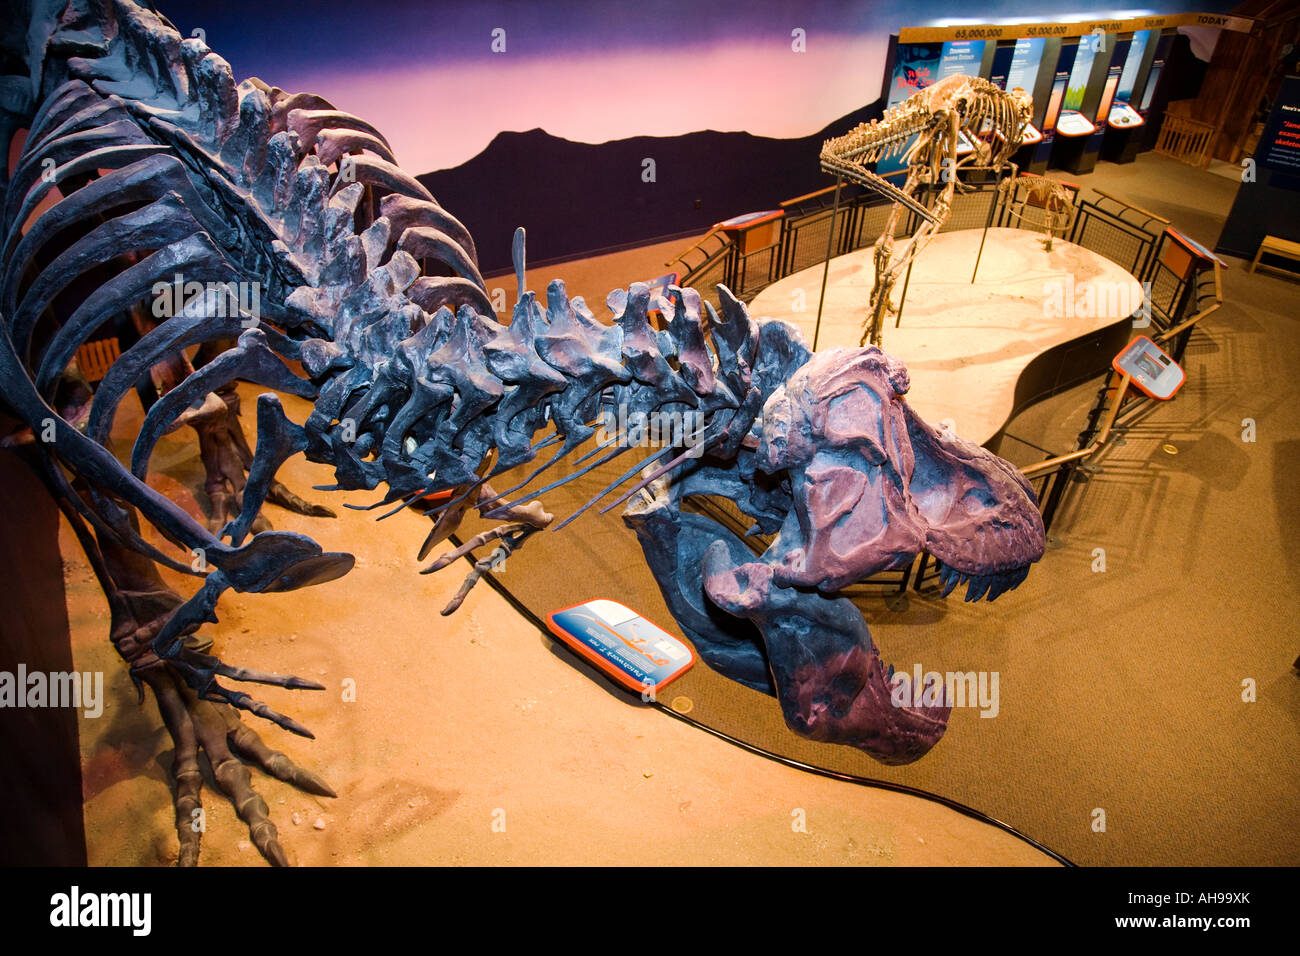 ILLINOIS Rockford Dinosaur skeletons on display Jane young Tyrannosaurus rex Burpee Museum interior - Stock Image